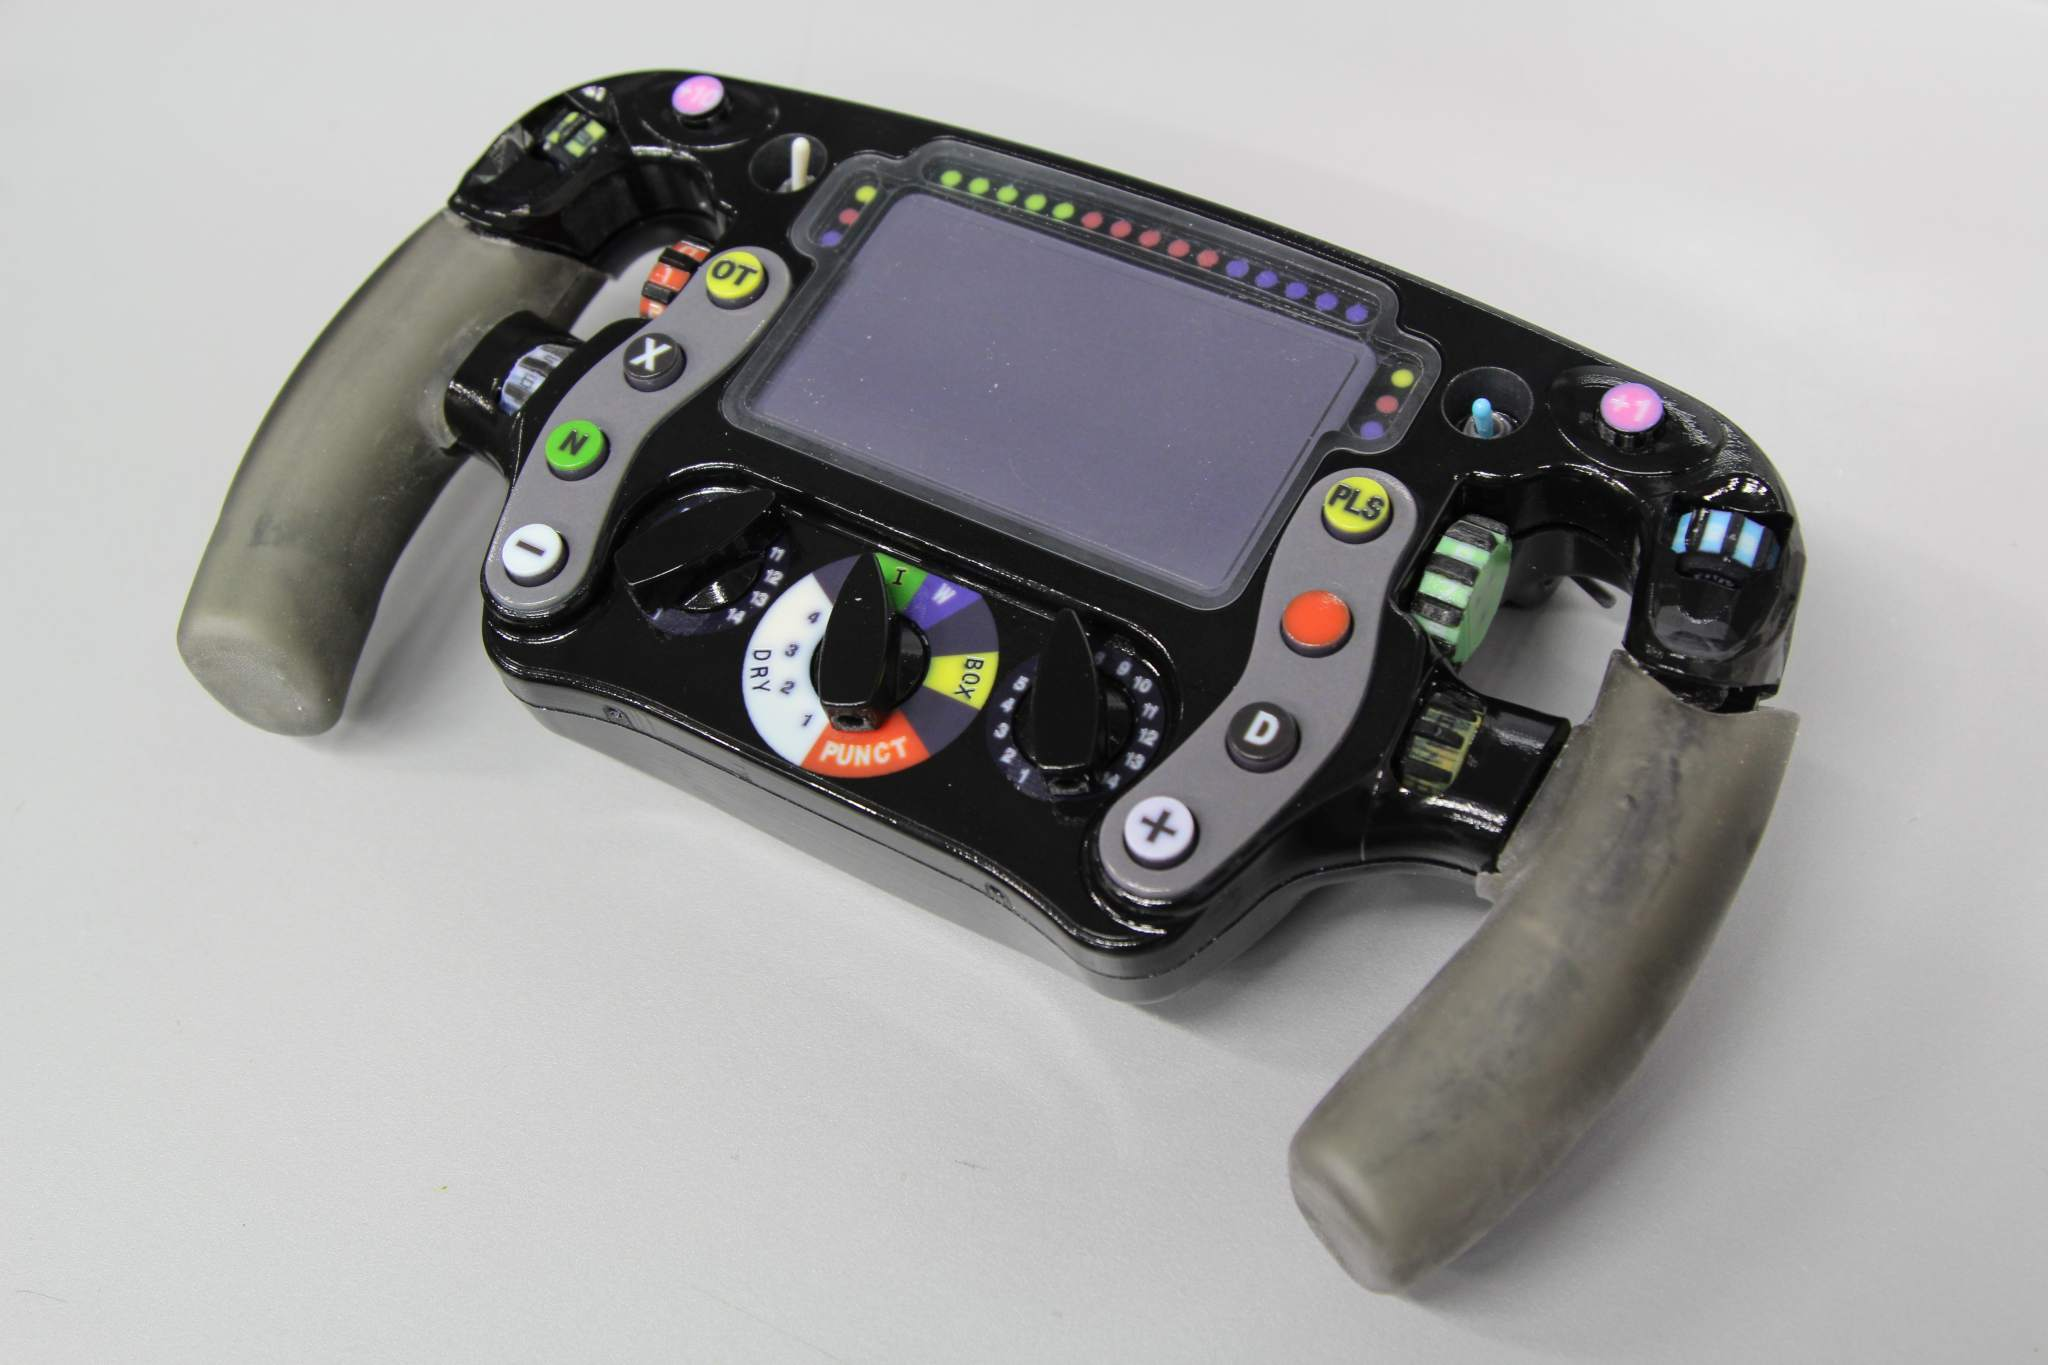 3D printing was used to prototype the steering wheel and map the buttons. Photo via Stratasys.